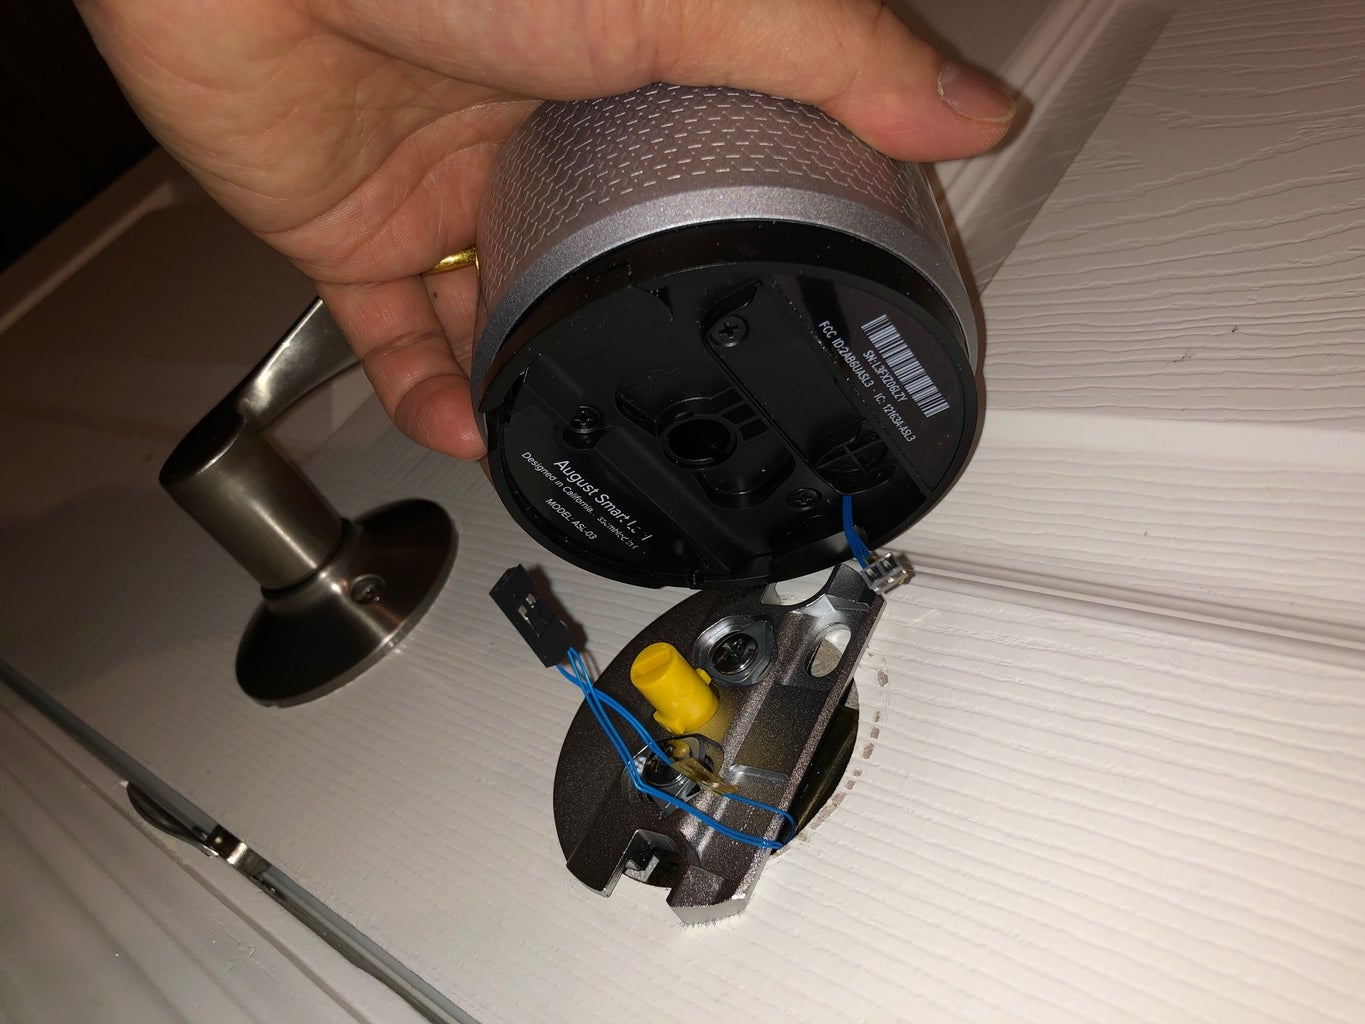 How to Route Power Wire From the Lock to the Door Frame?